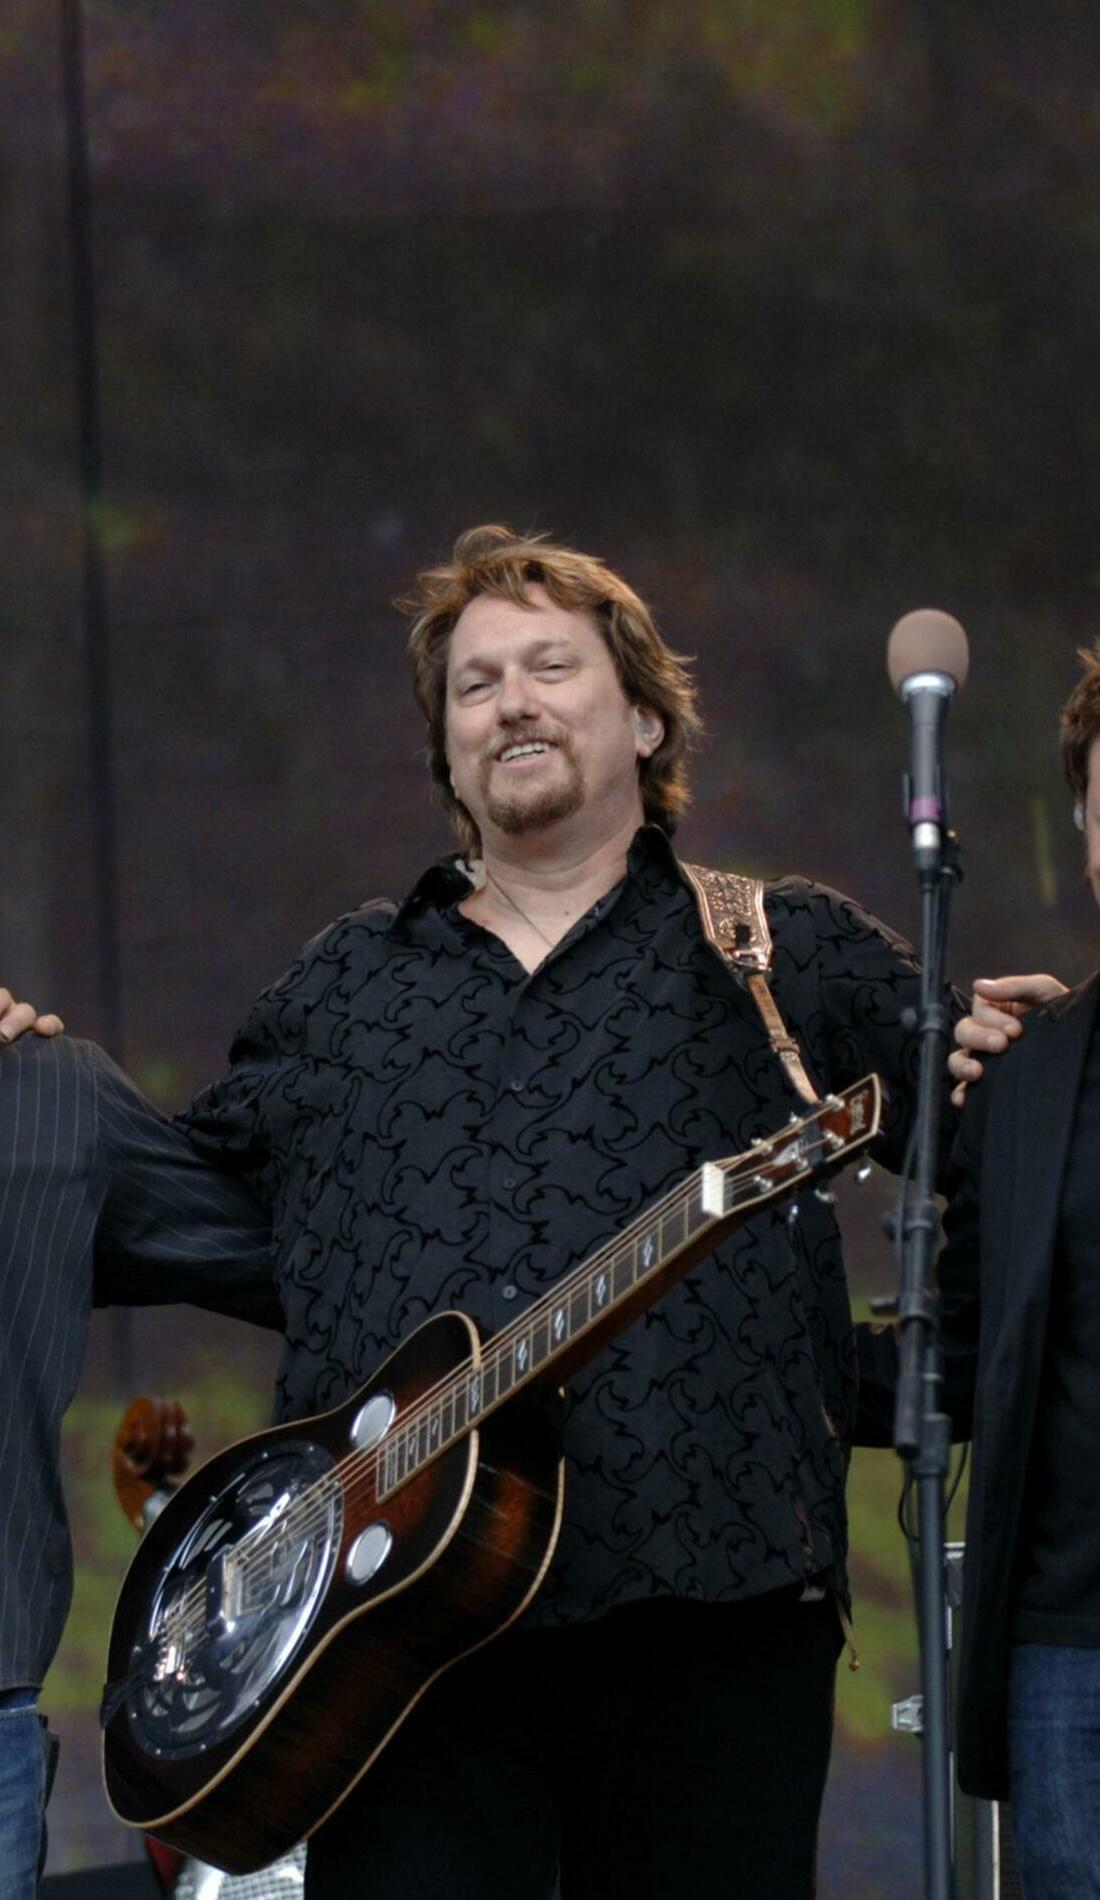 A The Jerry Douglas Band live event